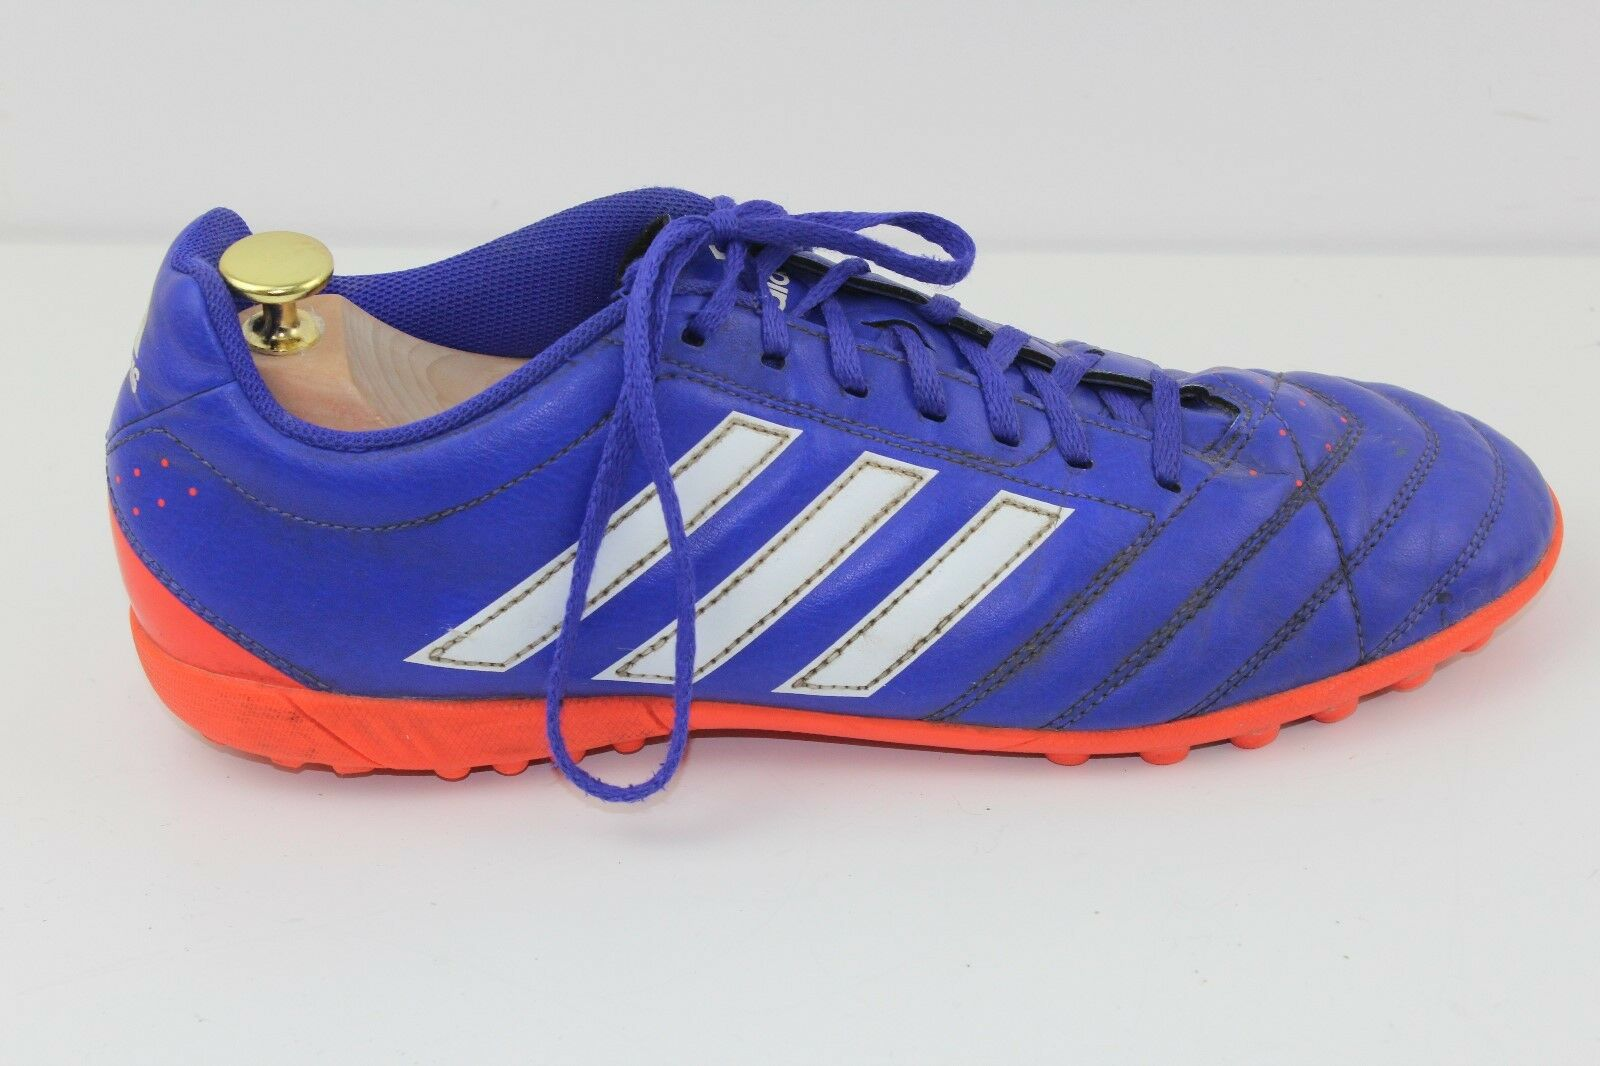 Homme Sports Adidas Bleu Sports Homme Baskets Taille UK 11 7/10 f380ab